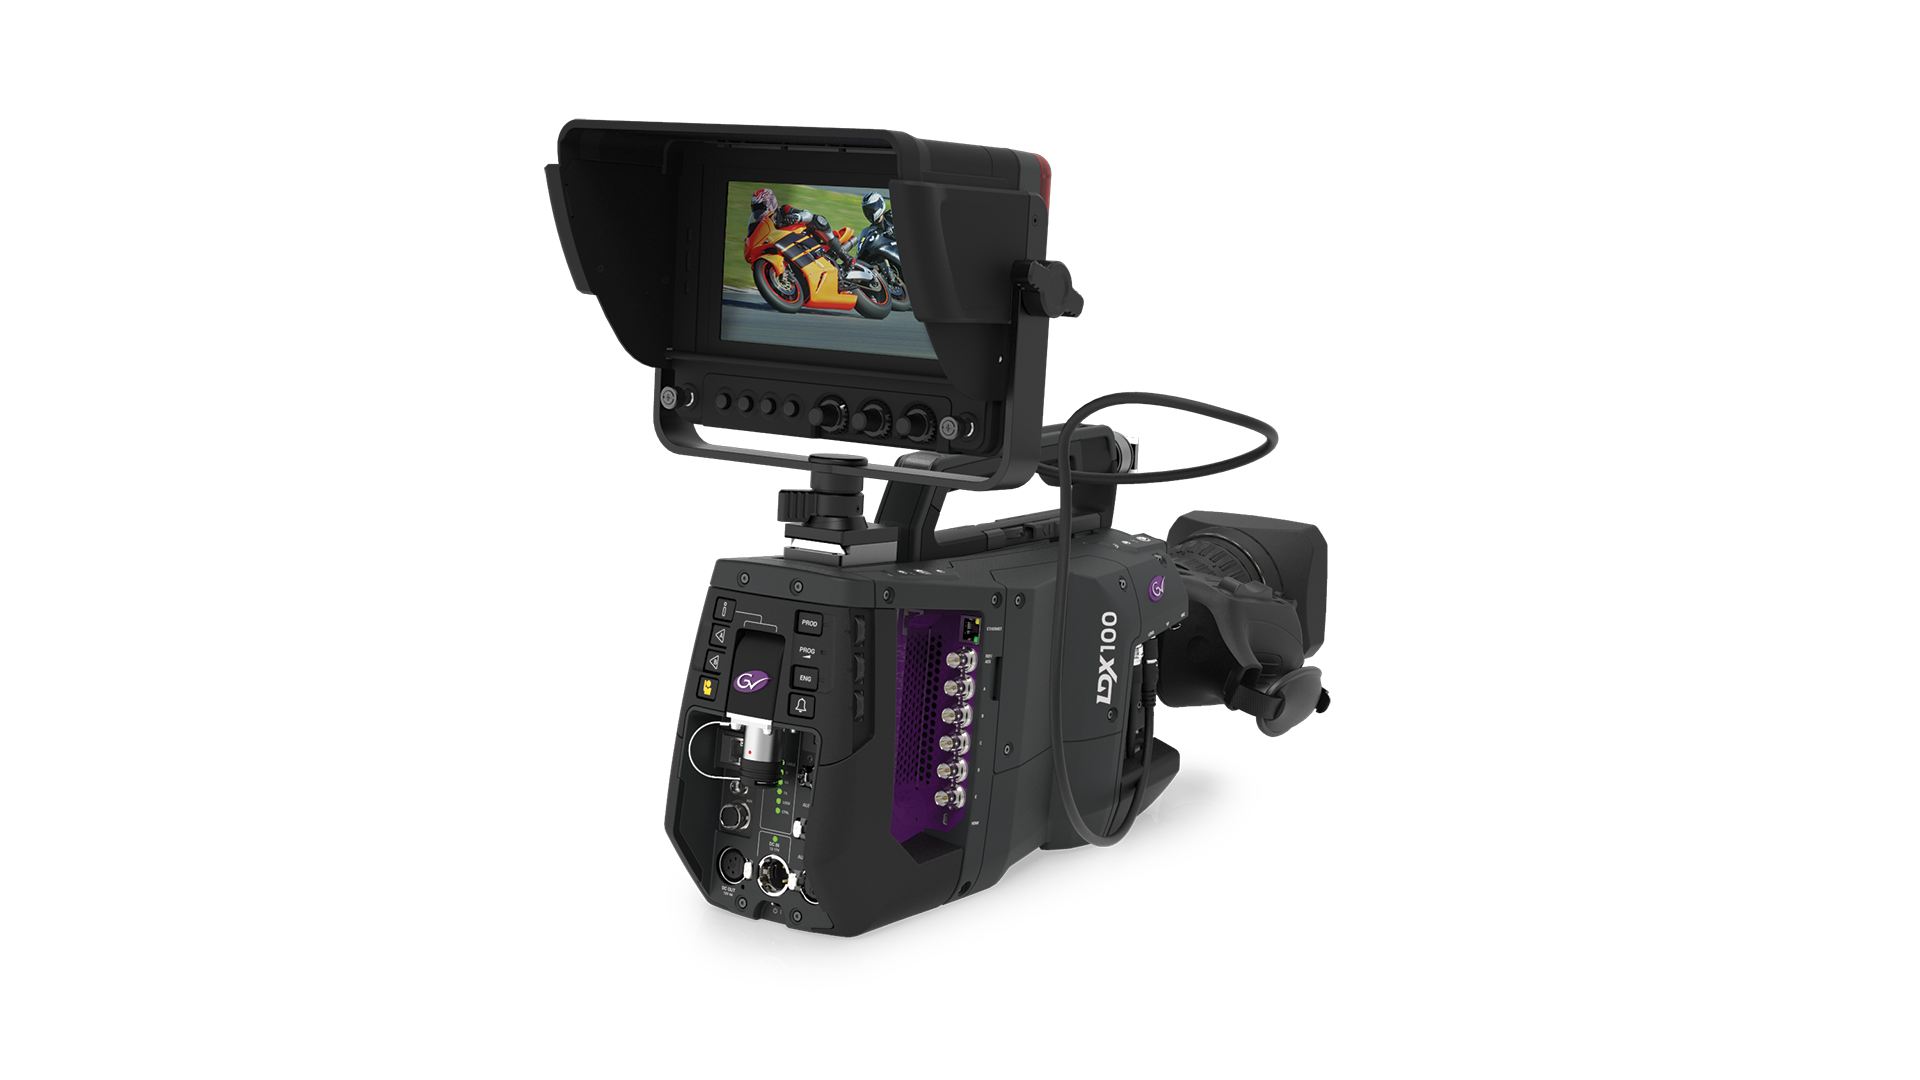 VF7-100X Viewfinder on LDX 100 Camera